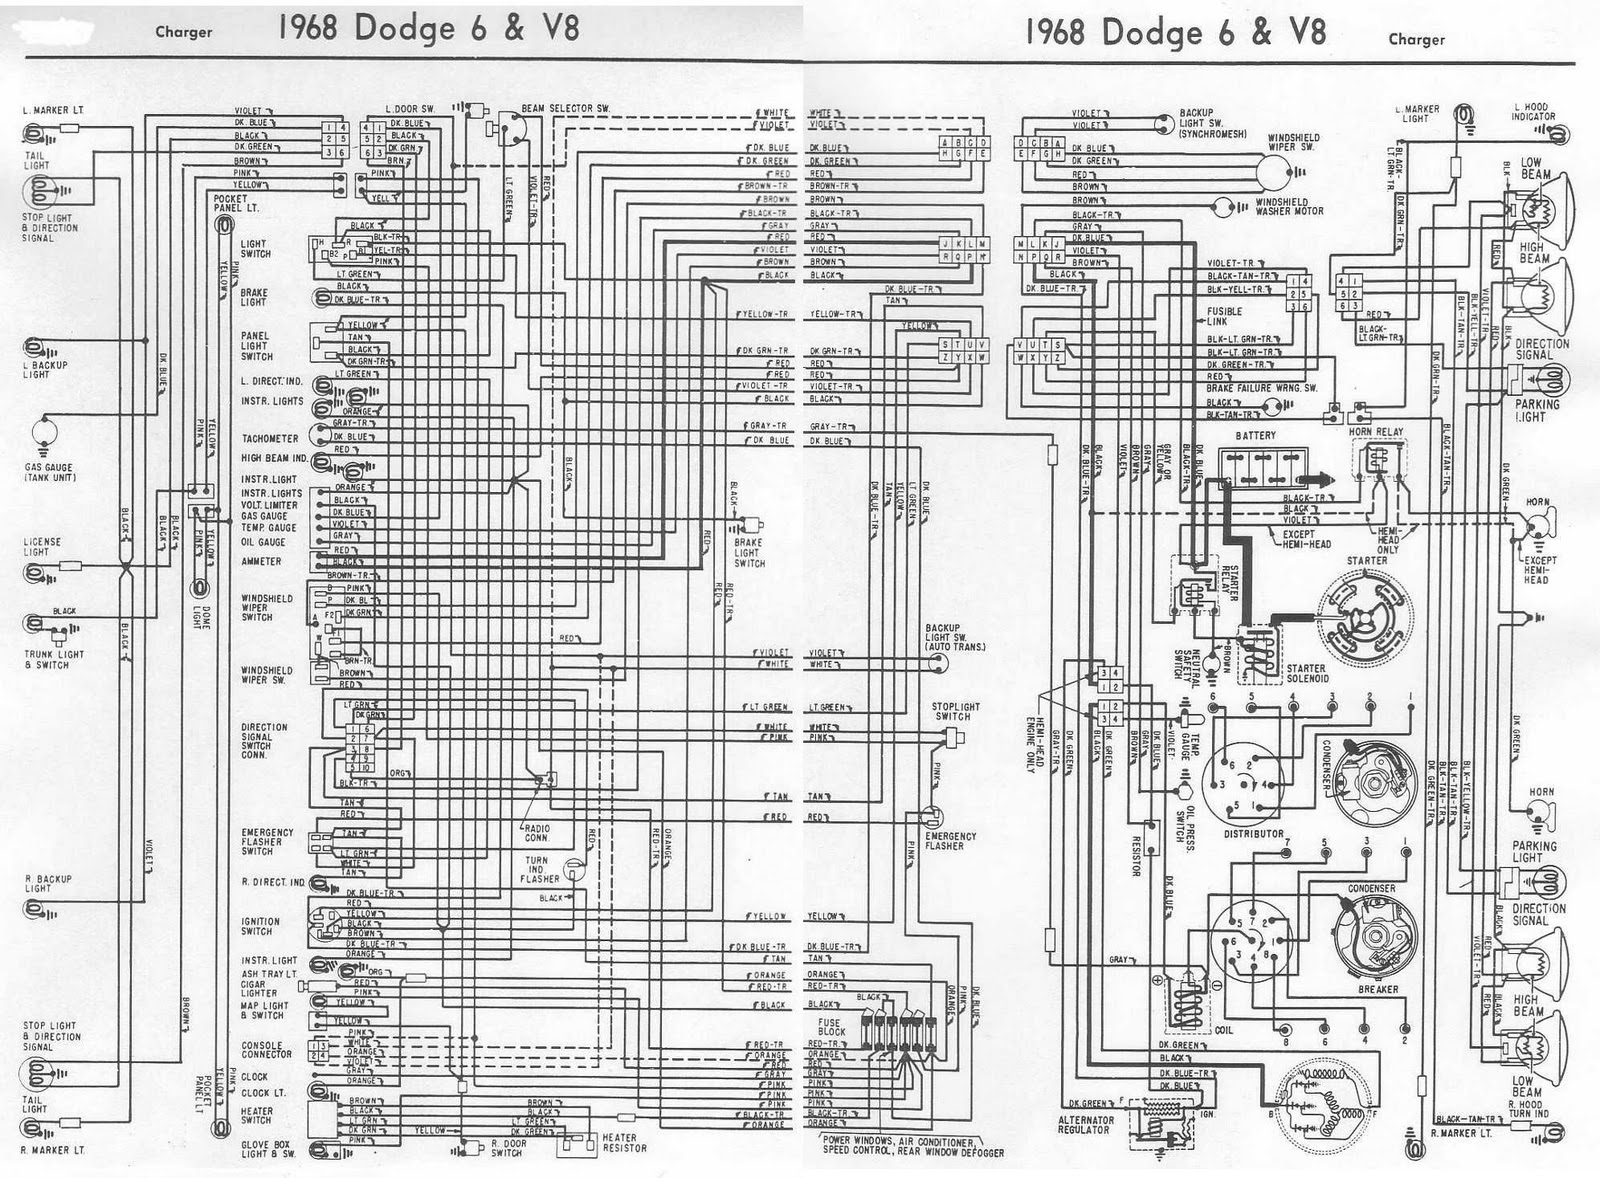 wiring diagram for 1979 gmc sierra wiring diagram for 1979 charger 68 charger dash harness. where does this connection go ... #12